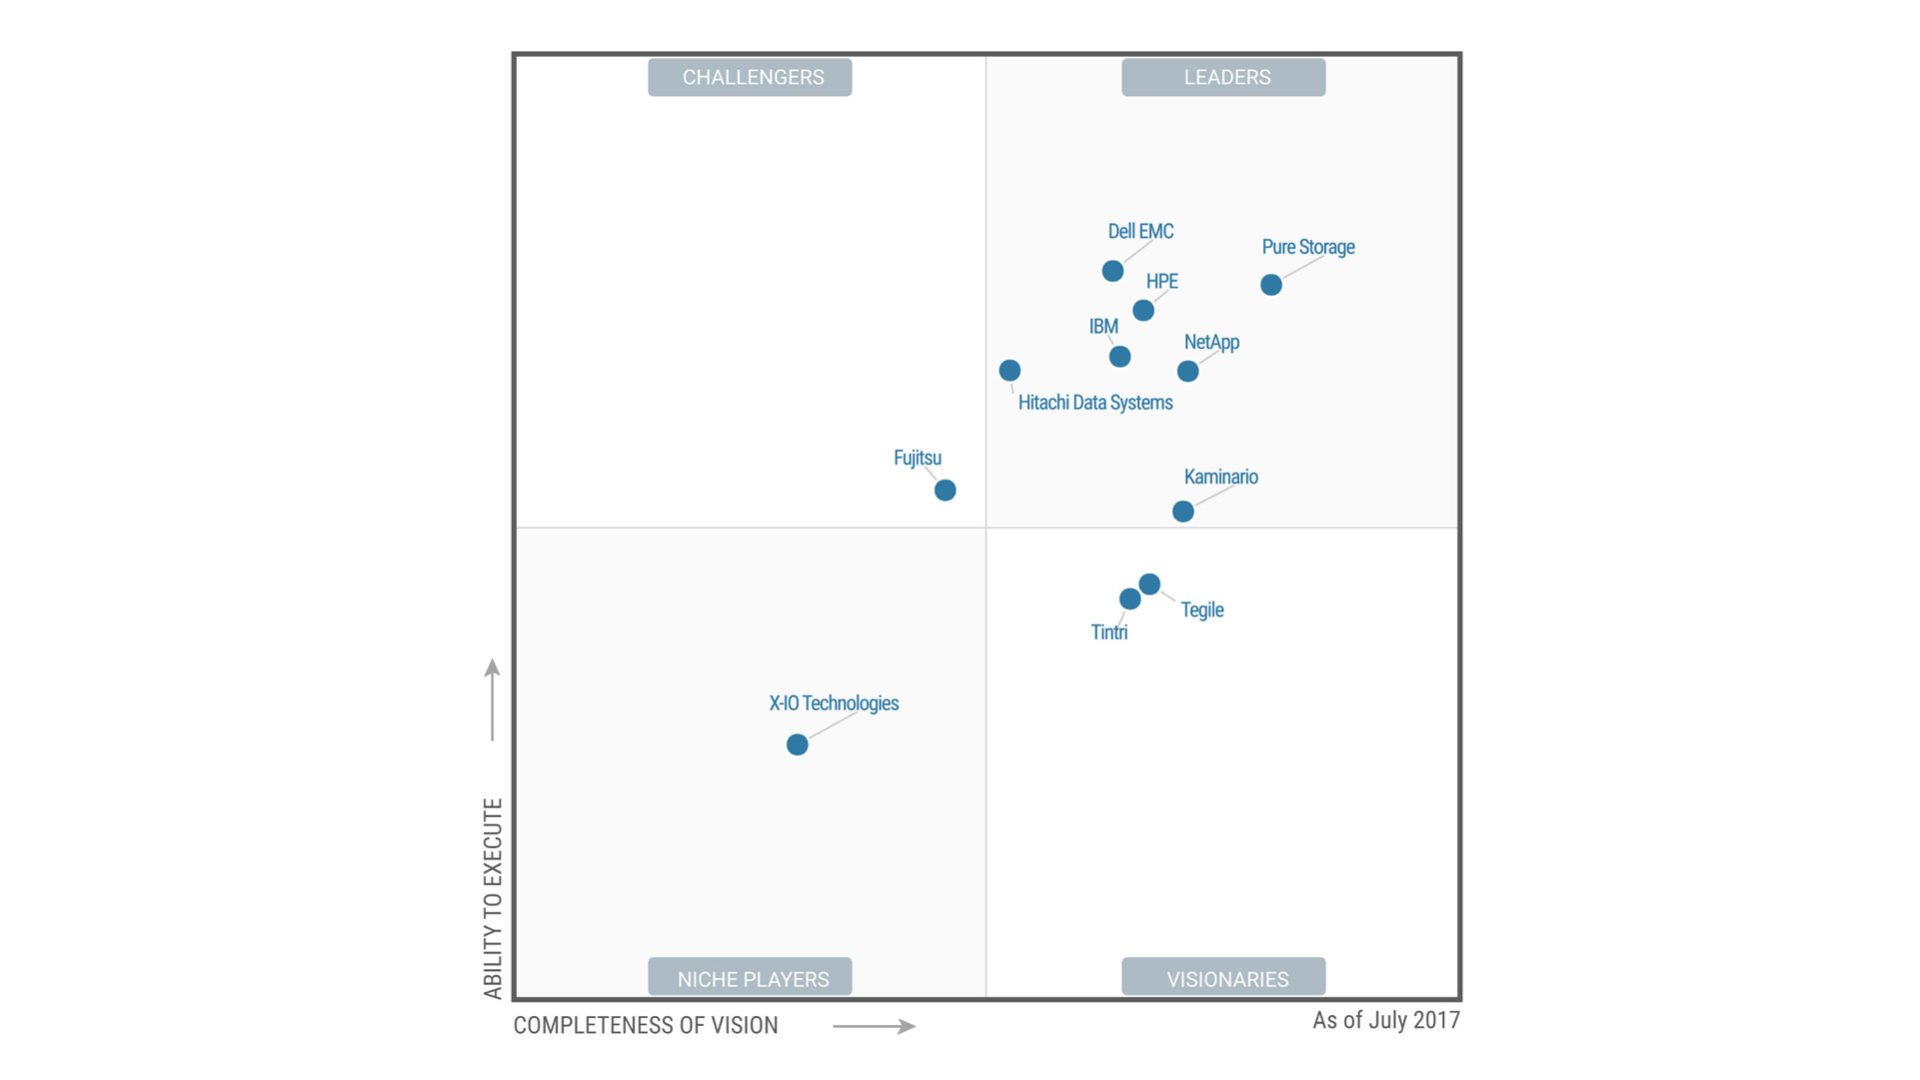 Quadrante Magico Gartner per Solid state array vendor